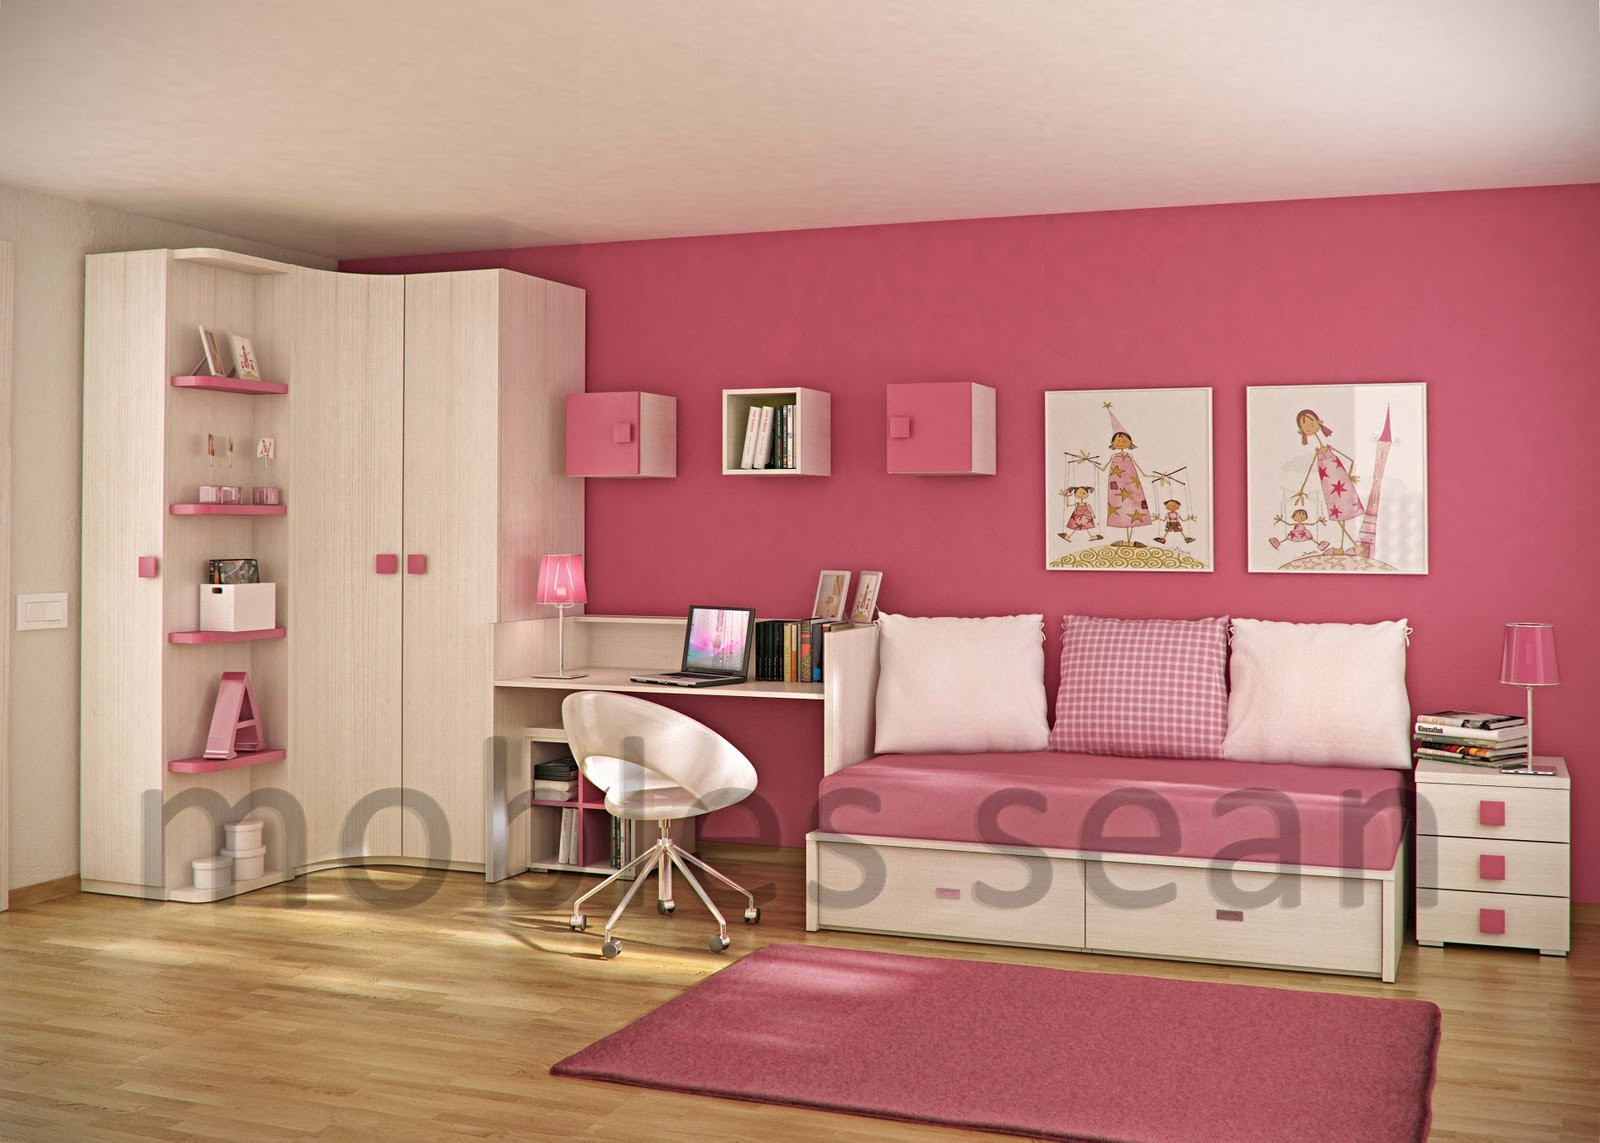 Best ideas about Pictures For Kids Room . Save or Pin Space Saving Designs for Small Kids Rooms Now.